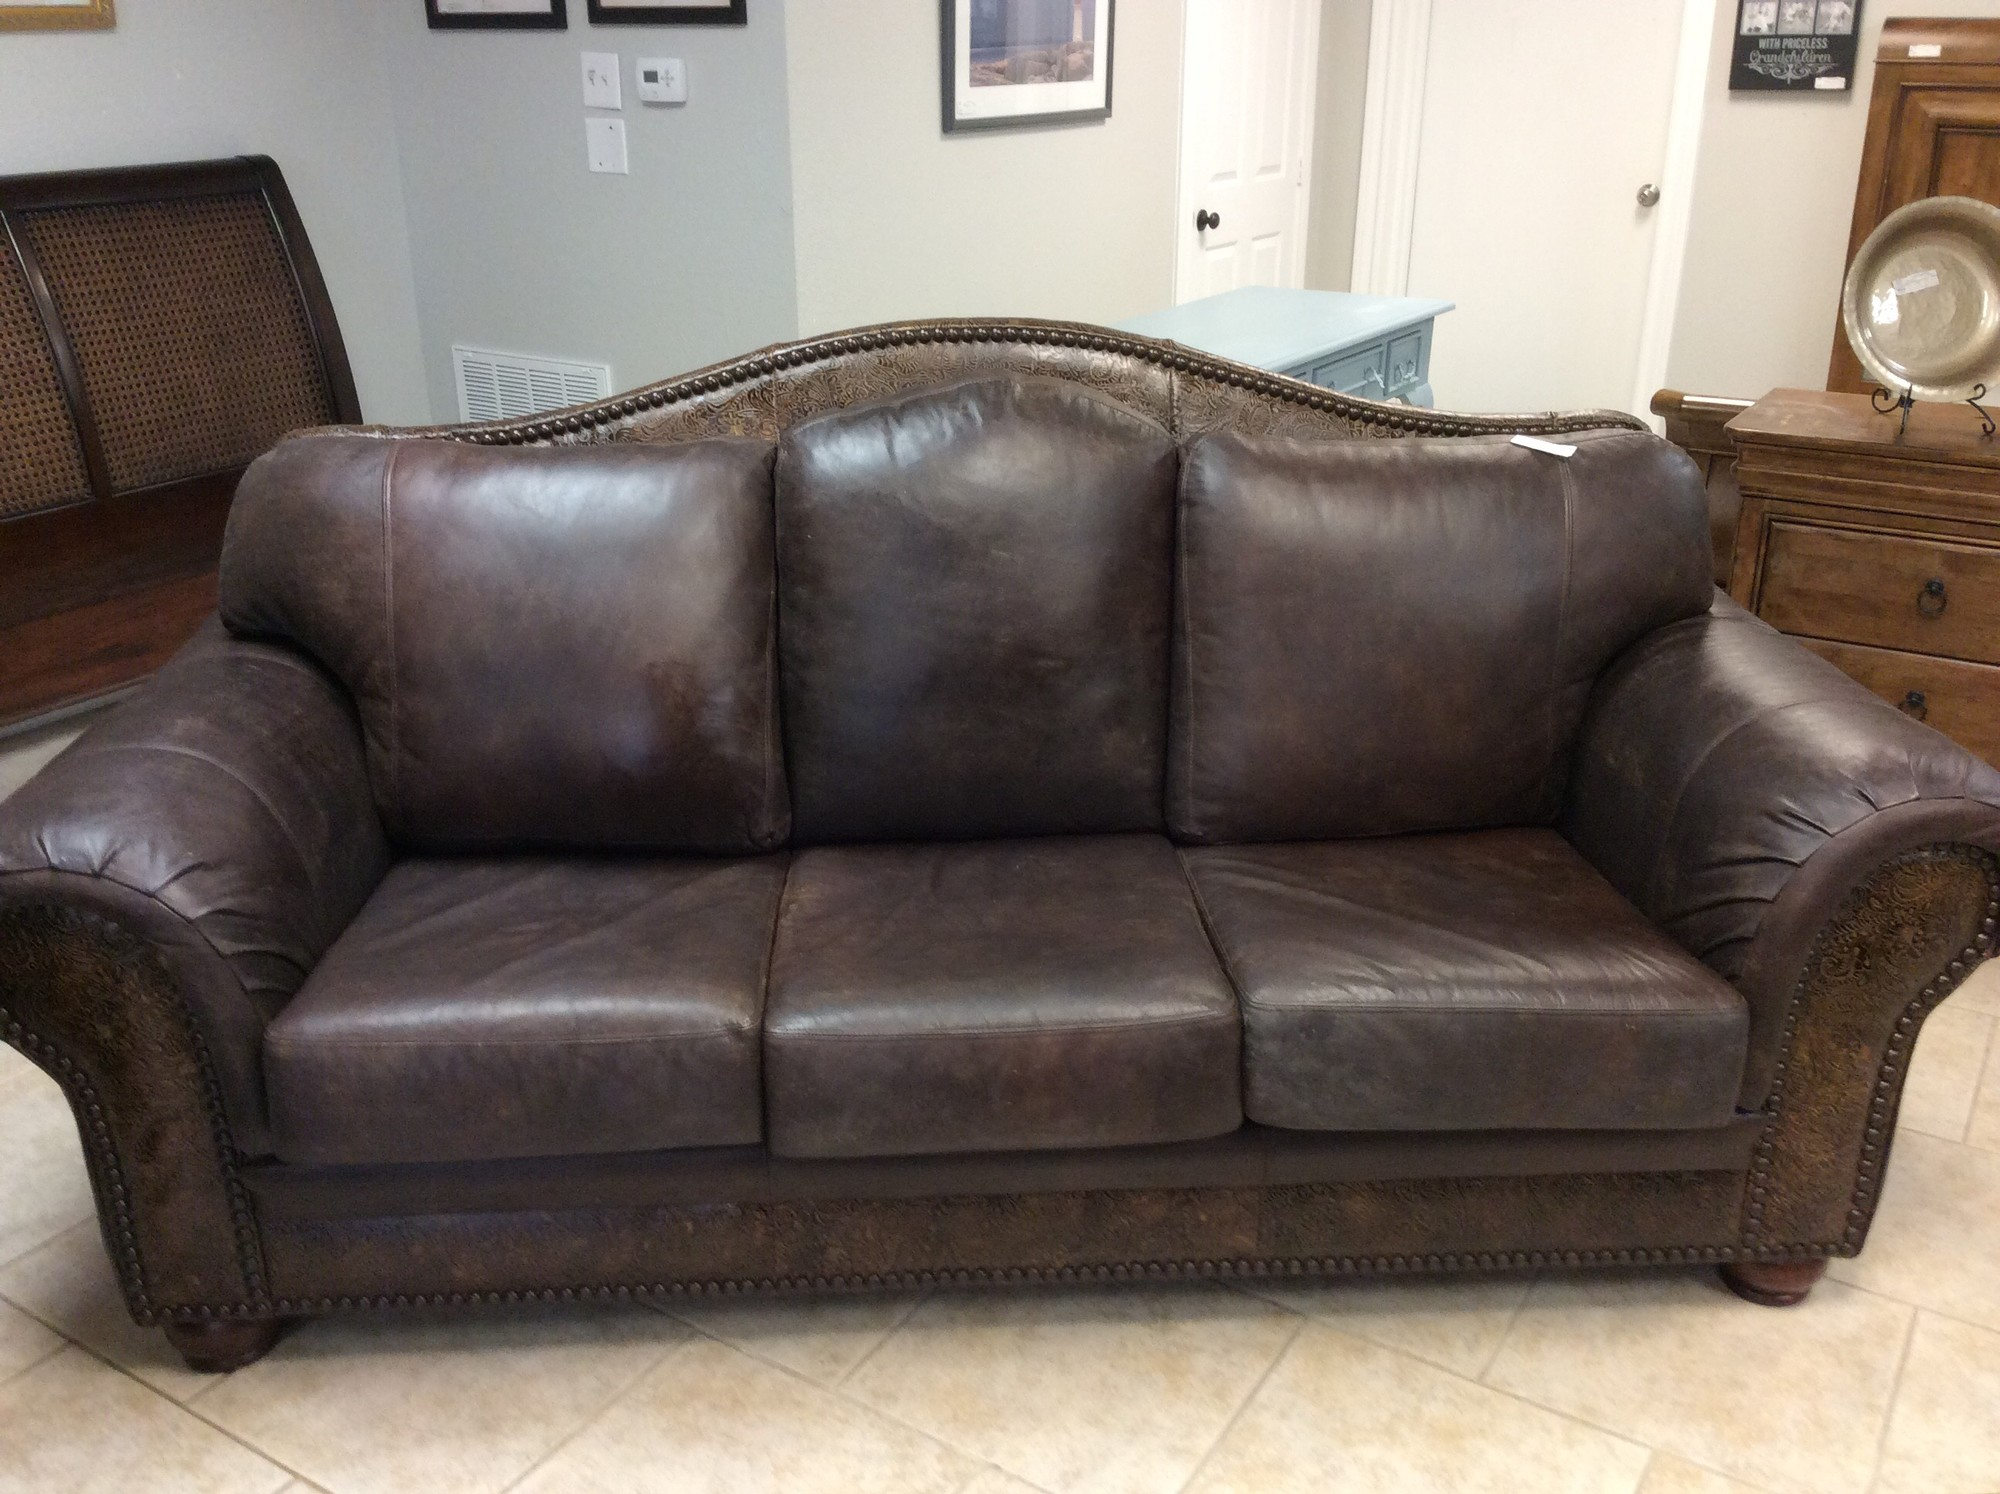 This handsome leather sofa is only 3 years old and came from GALLERY Furniture. The genuine leather upholstery is distressed for a rustic look. There are tooled leather panels across the back, the bottom front, and the fronts of the arms. All cushions are removable, but have sturdy velcro fasteners to minimize slippage. There is aslo a matching lovseat that is available for purchased seperately.